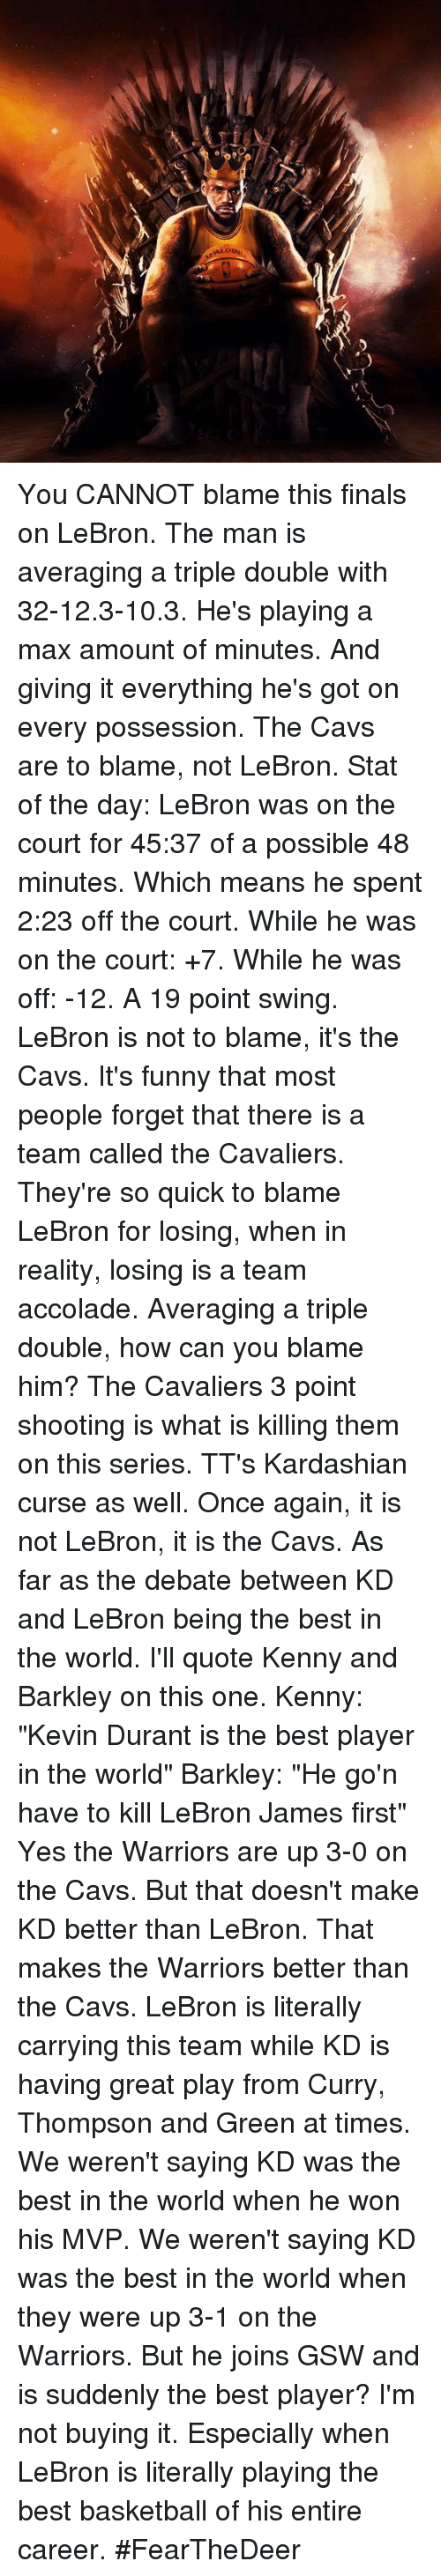 """Basketball, Cavs, and Finals: ALDI You CANNOT blame this finals on LeBron. The man is averaging a triple double with 32-12.3-10.3. He's playing a max amount of minutes. And giving it everything he's got on every possession. The Cavs are to blame, not LeBron.   Stat of the day: LeBron was on the court for 45:37 of a possible 48 minutes. Which means he spent 2:23 off the court. While he was on the court: +7. While he was off: -12. A 19 point swing. LeBron is not to blame, it's the Cavs.  It's funny that most people forget that there is a team called the Cavaliers. They're so quick to blame LeBron for losing, when in reality, losing is a team accolade. Averaging a triple double, how can you blame him? The Cavaliers 3 point shooting is what is killing them on this series. TT's Kardashian curse as well. Once again, it is not LeBron, it is the Cavs.   As far as the debate between KD and LeBron being the best in the world. I'll quote Kenny and Barkley on this one.   Kenny: """"Kevin Durant is the best player in the world"""" Barkley: """"He go'n have to kill LeBron James first""""  Yes the Warriors are up 3-0 on the Cavs. But that doesn't make KD better than LeBron. That makes the Warriors better than the Cavs. LeBron is literally carrying this team while KD is having great play from Curry, Thompson and Green at times.   We weren't saying KD was the best in the world when he won his MVP. We weren't saying KD was the best in the world when they were up 3-1 on the Warriors. But he joins GSW and is suddenly the best player? I'm not buying it. Especially when LeBron is literally playing the best basketball of his entire career.   #FearTheDeer"""